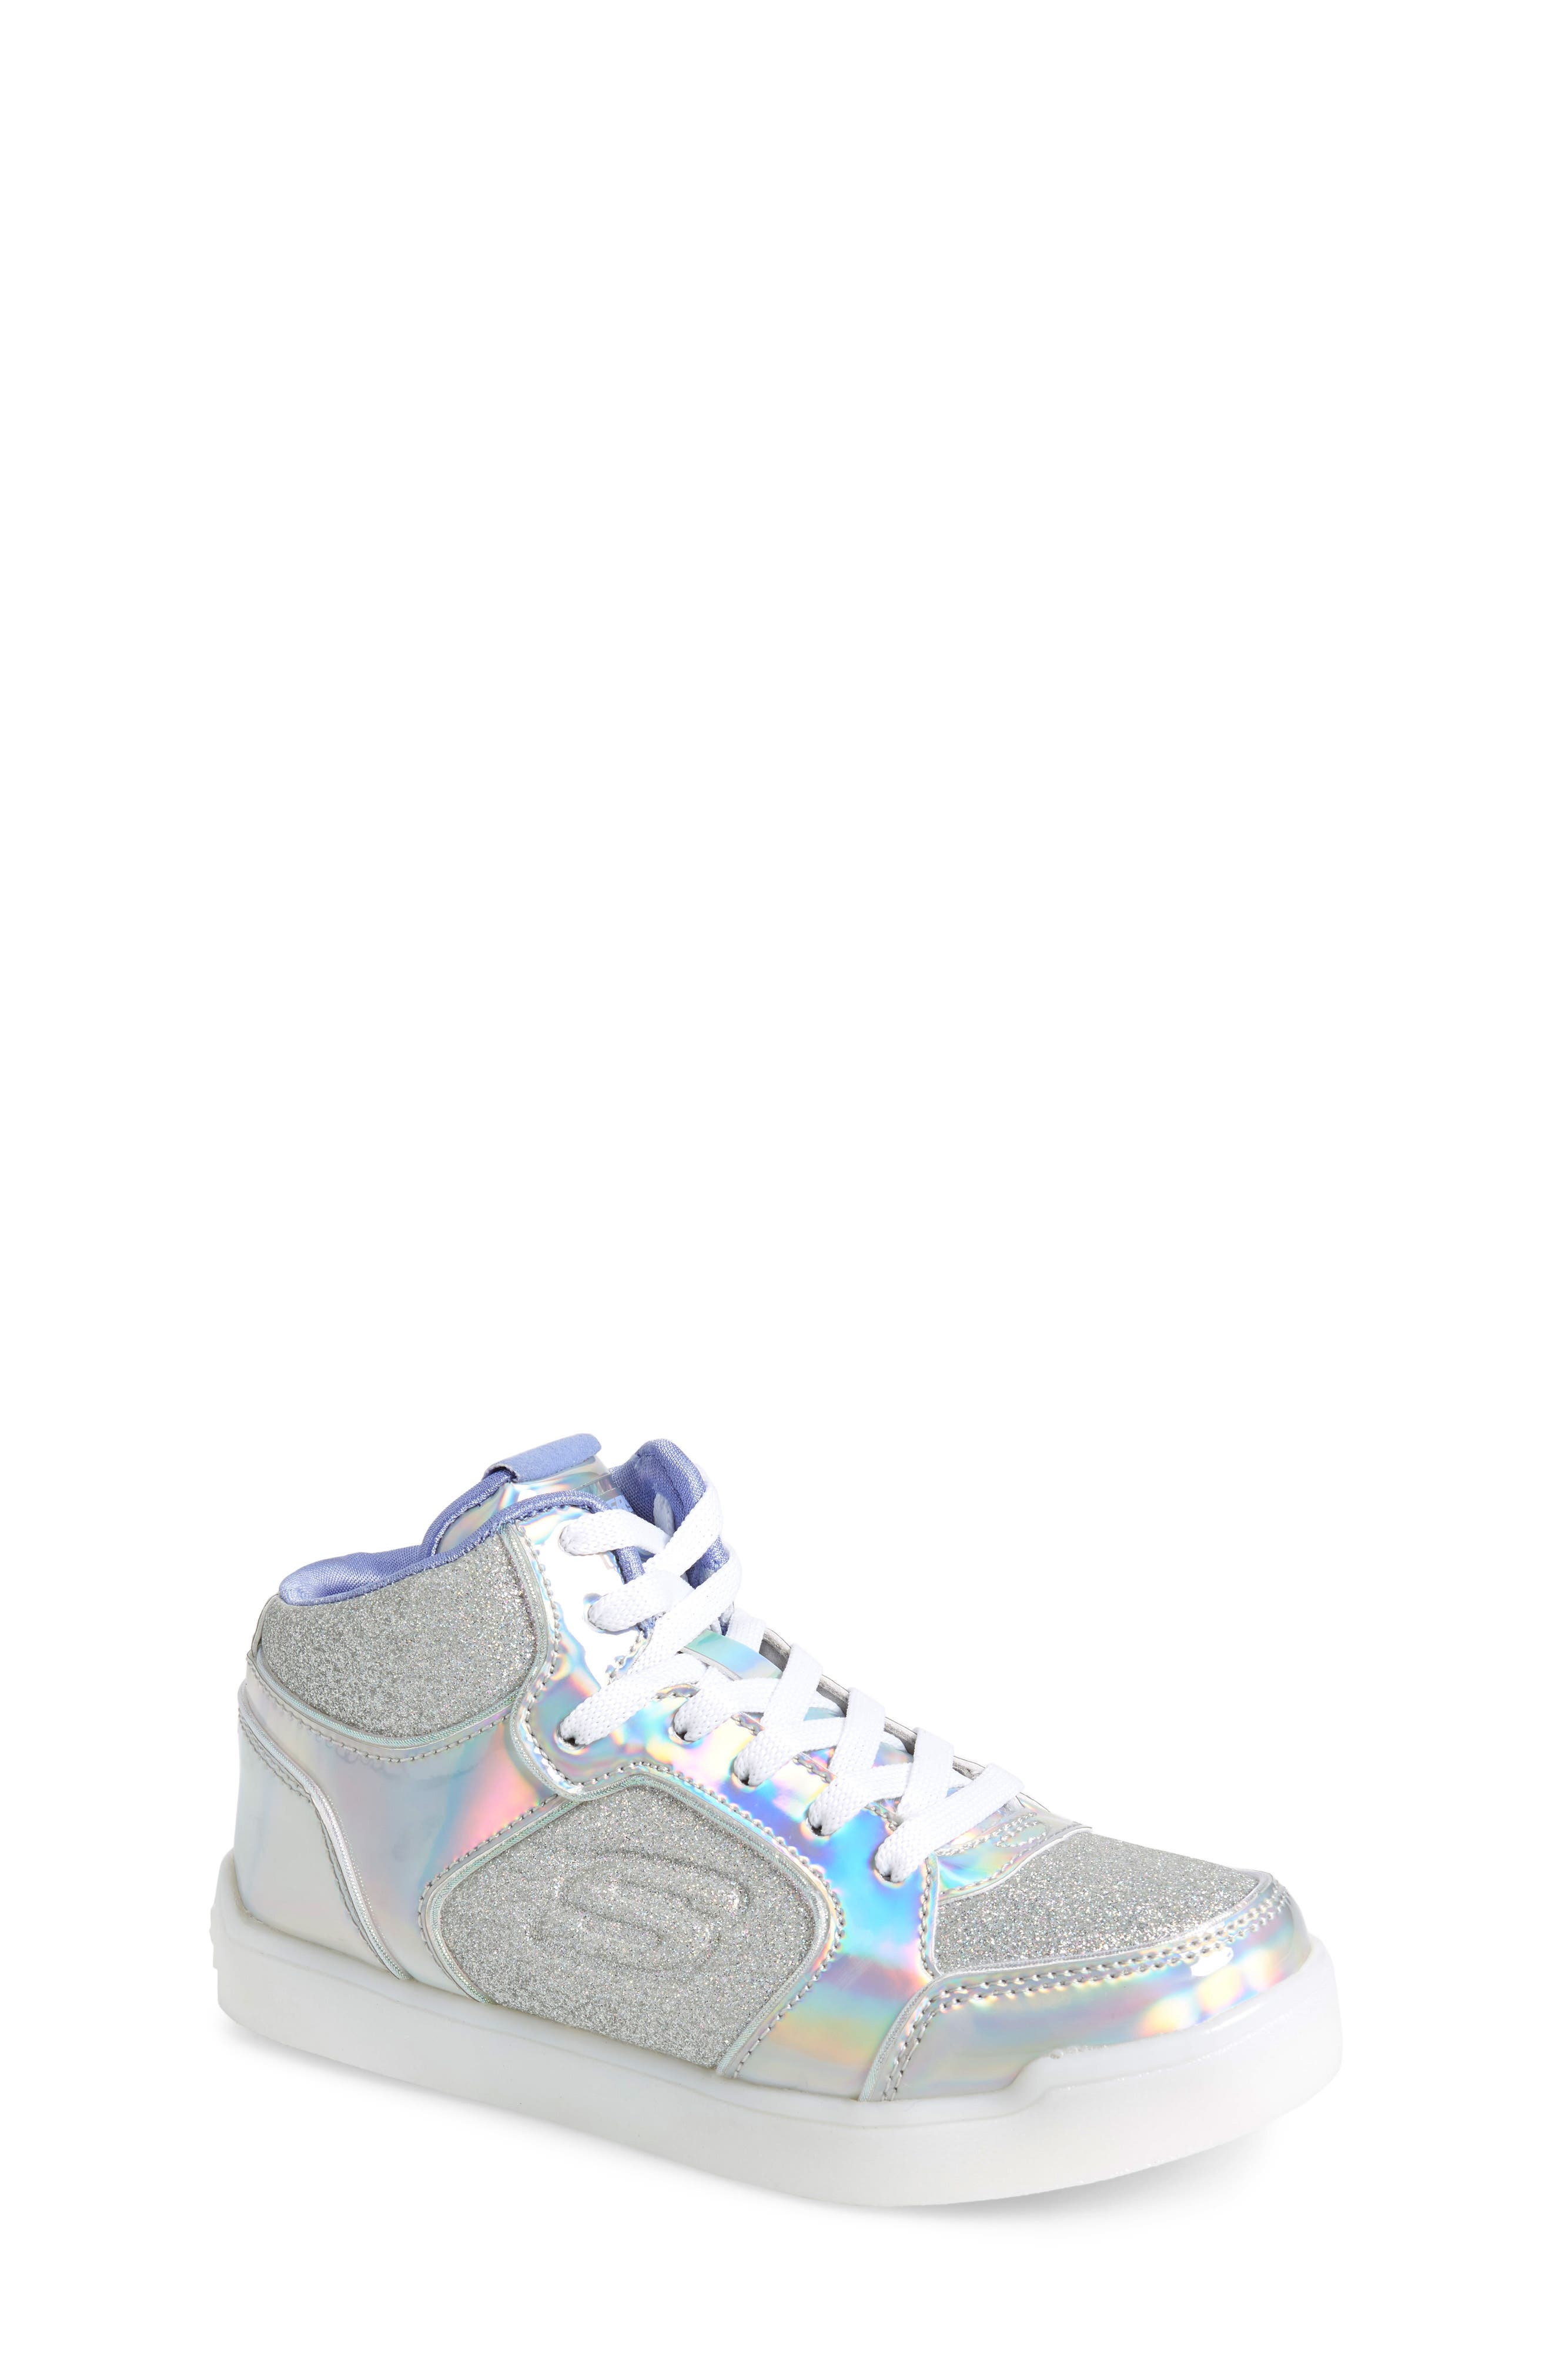 Energy Lights Pro Ultra Light-Up Sneaker,                             Main thumbnail 1, color,                             SILVER